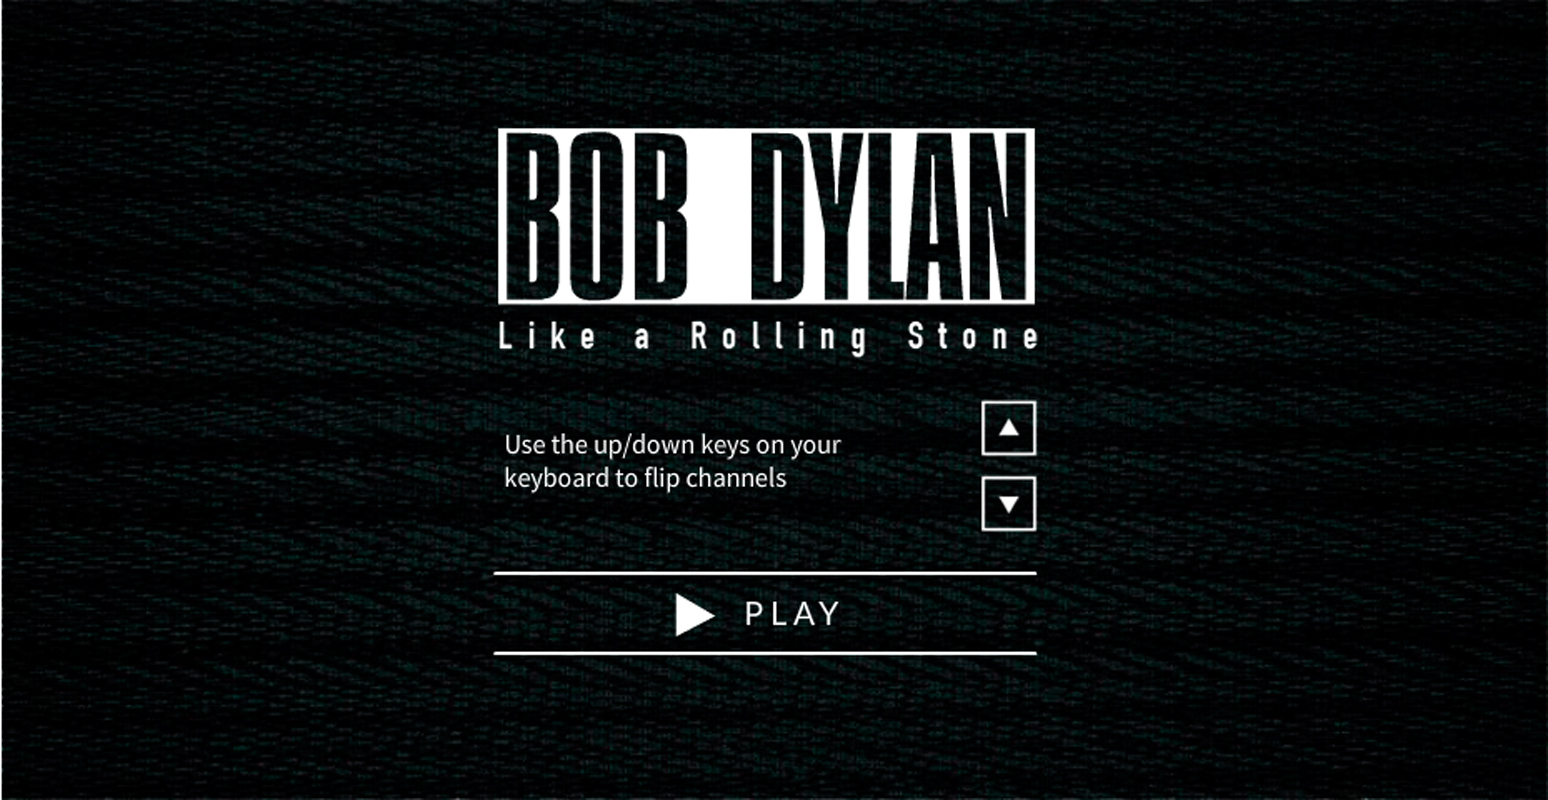 The opening frame of Heymann's video invites viewers to use the interactive channel-flipping feature. (credit: Screenshot courtesy of _video.bobdylan.com_)